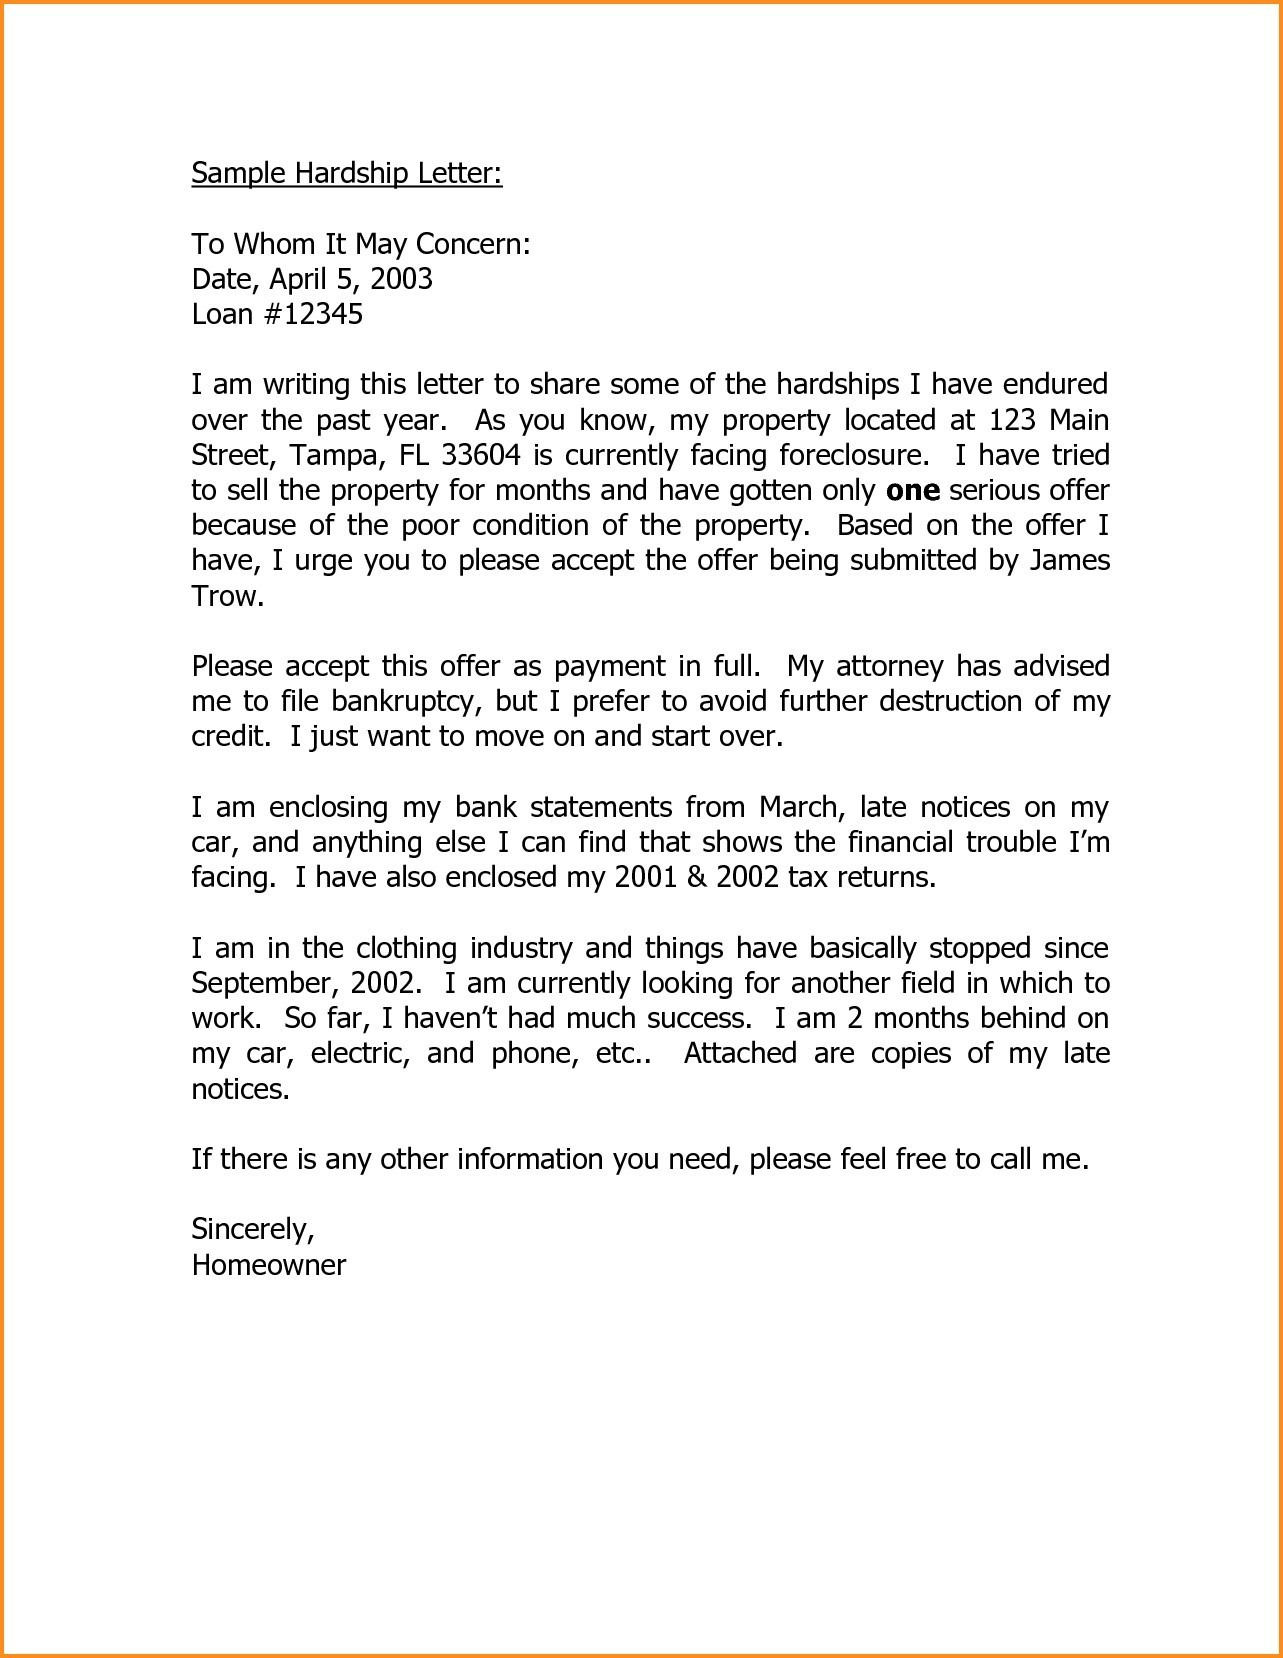 to whom it may concern letter sample and format